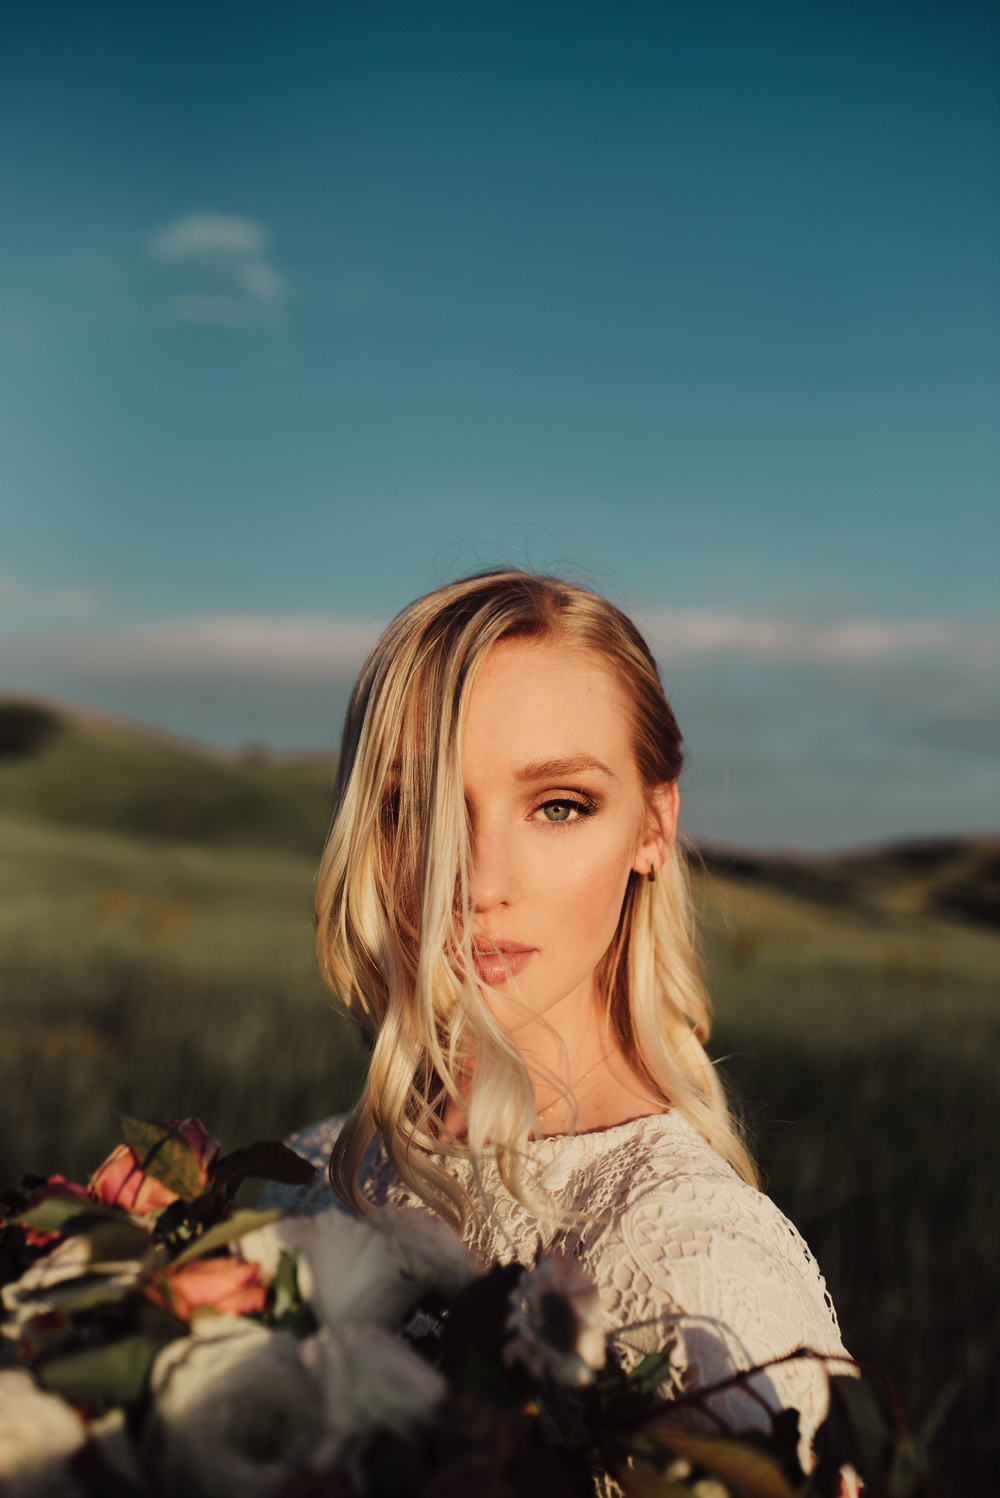 Harsh sunset light bridals